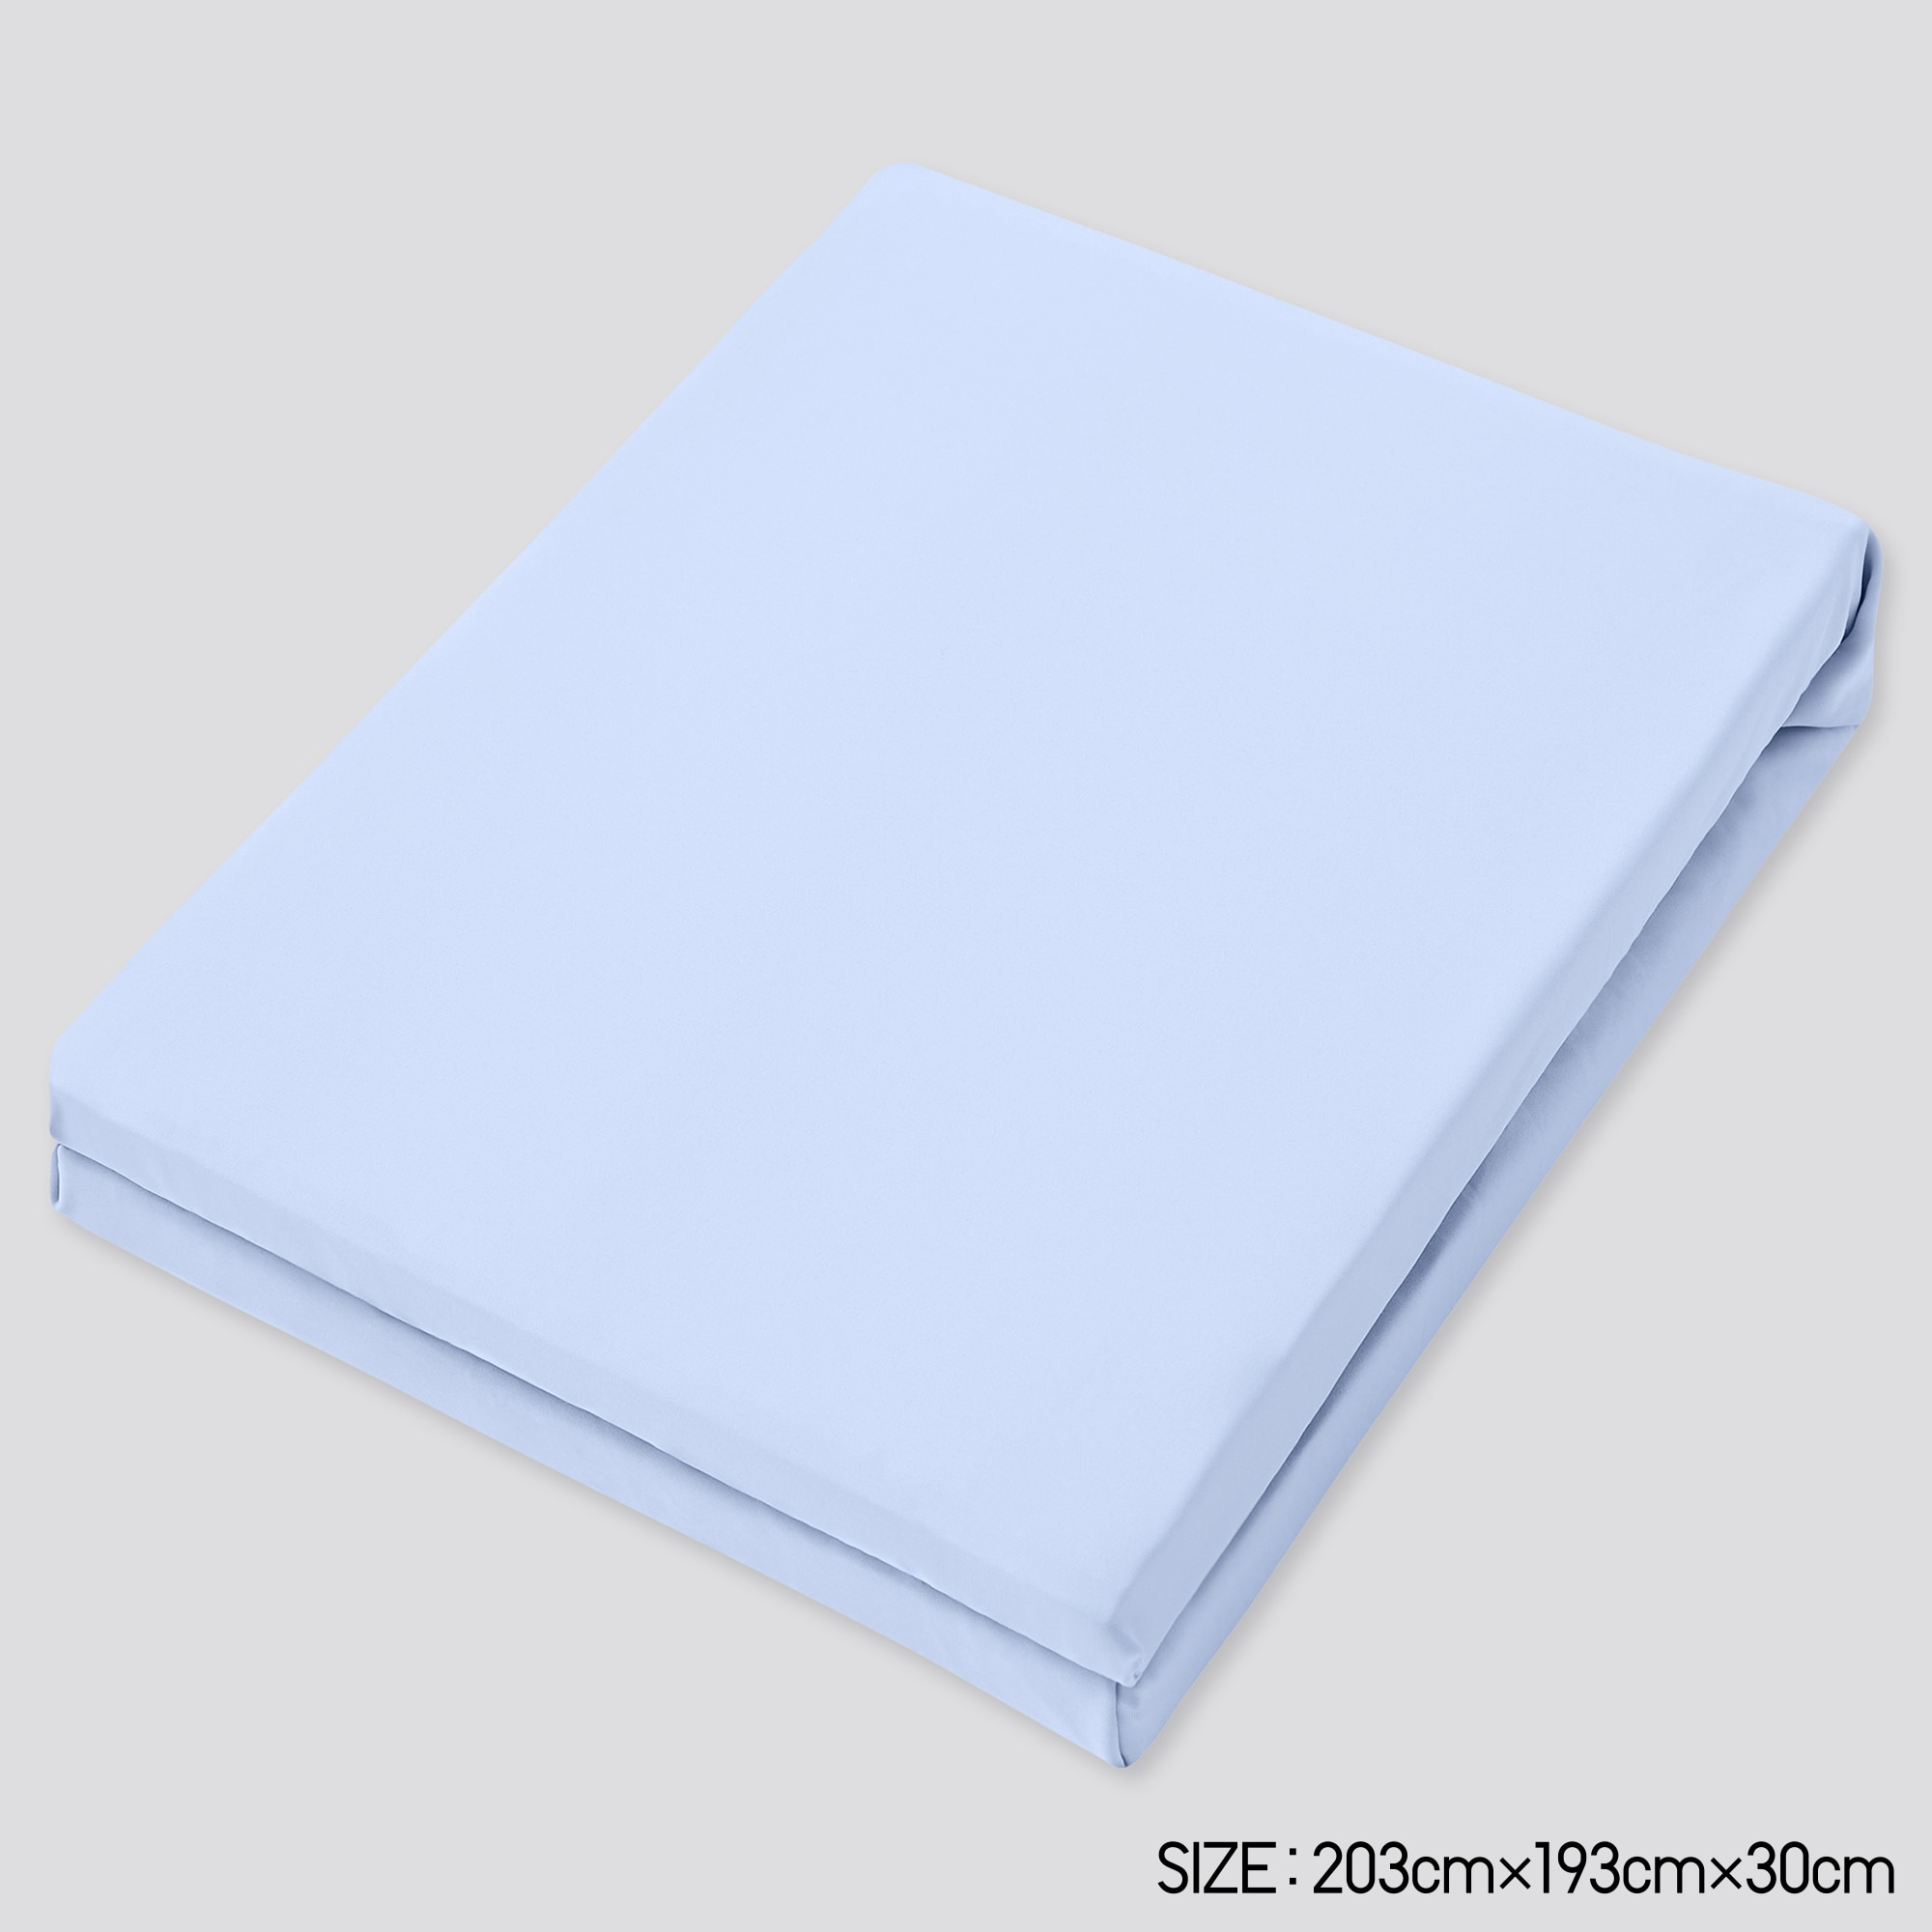 Uniqlo AIRism KING-SIZE FITTED SHEET